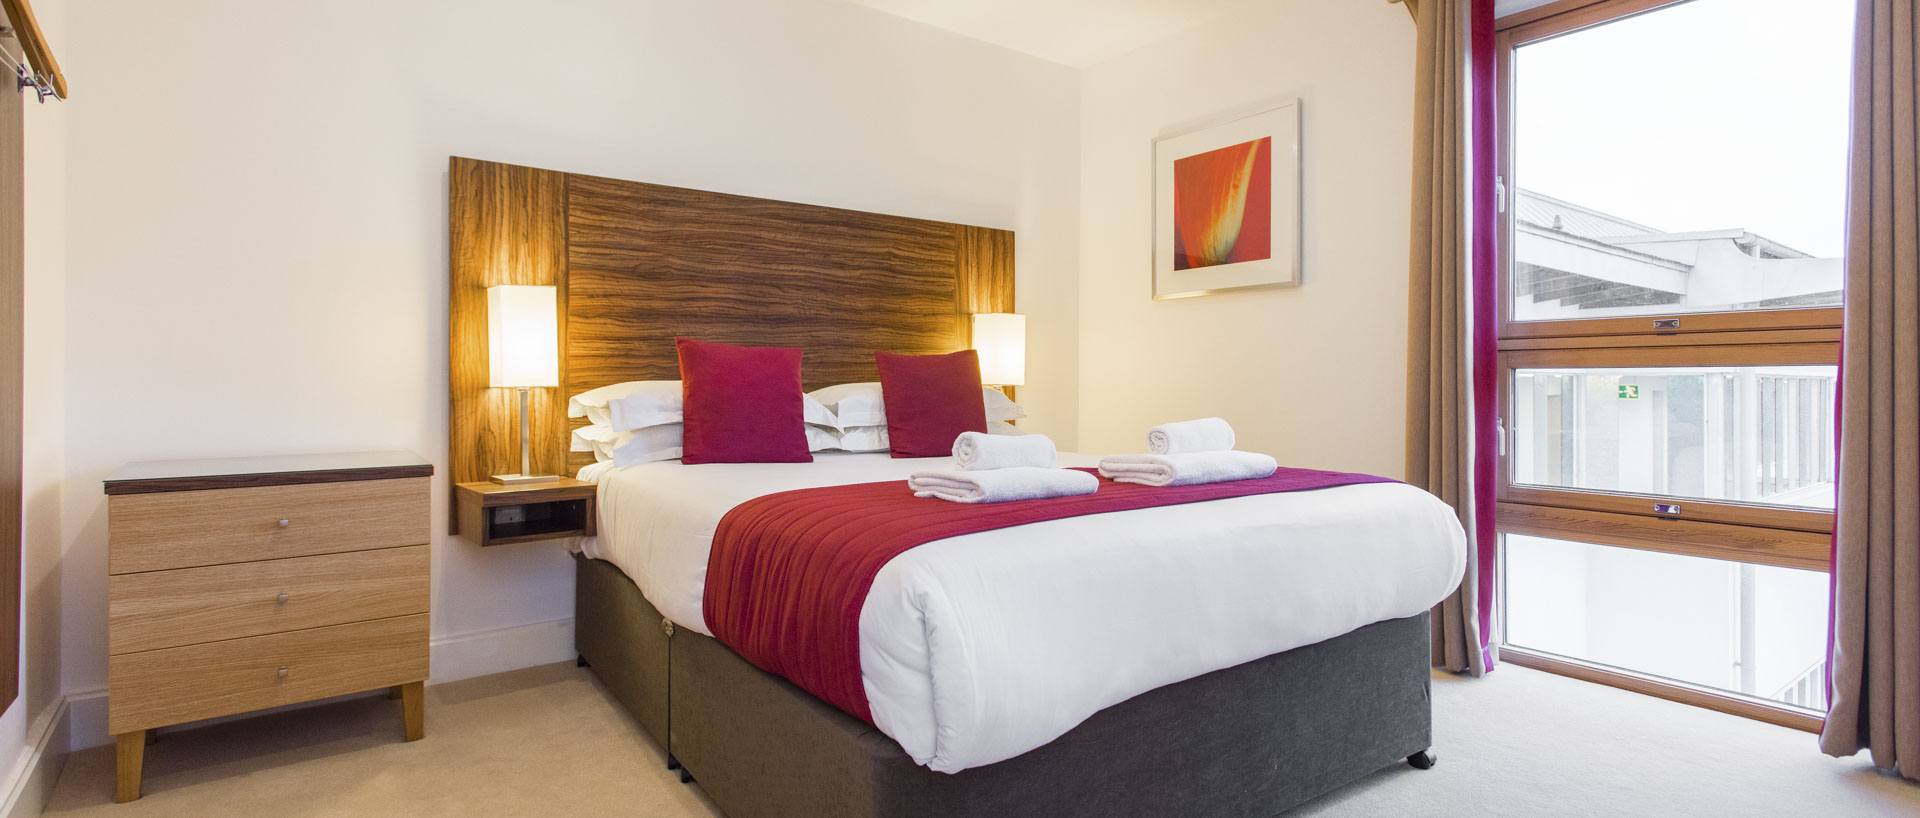 Towels on the bed of PREMIER SUITES PLUS Bristol Cabot Circus serviced apartments